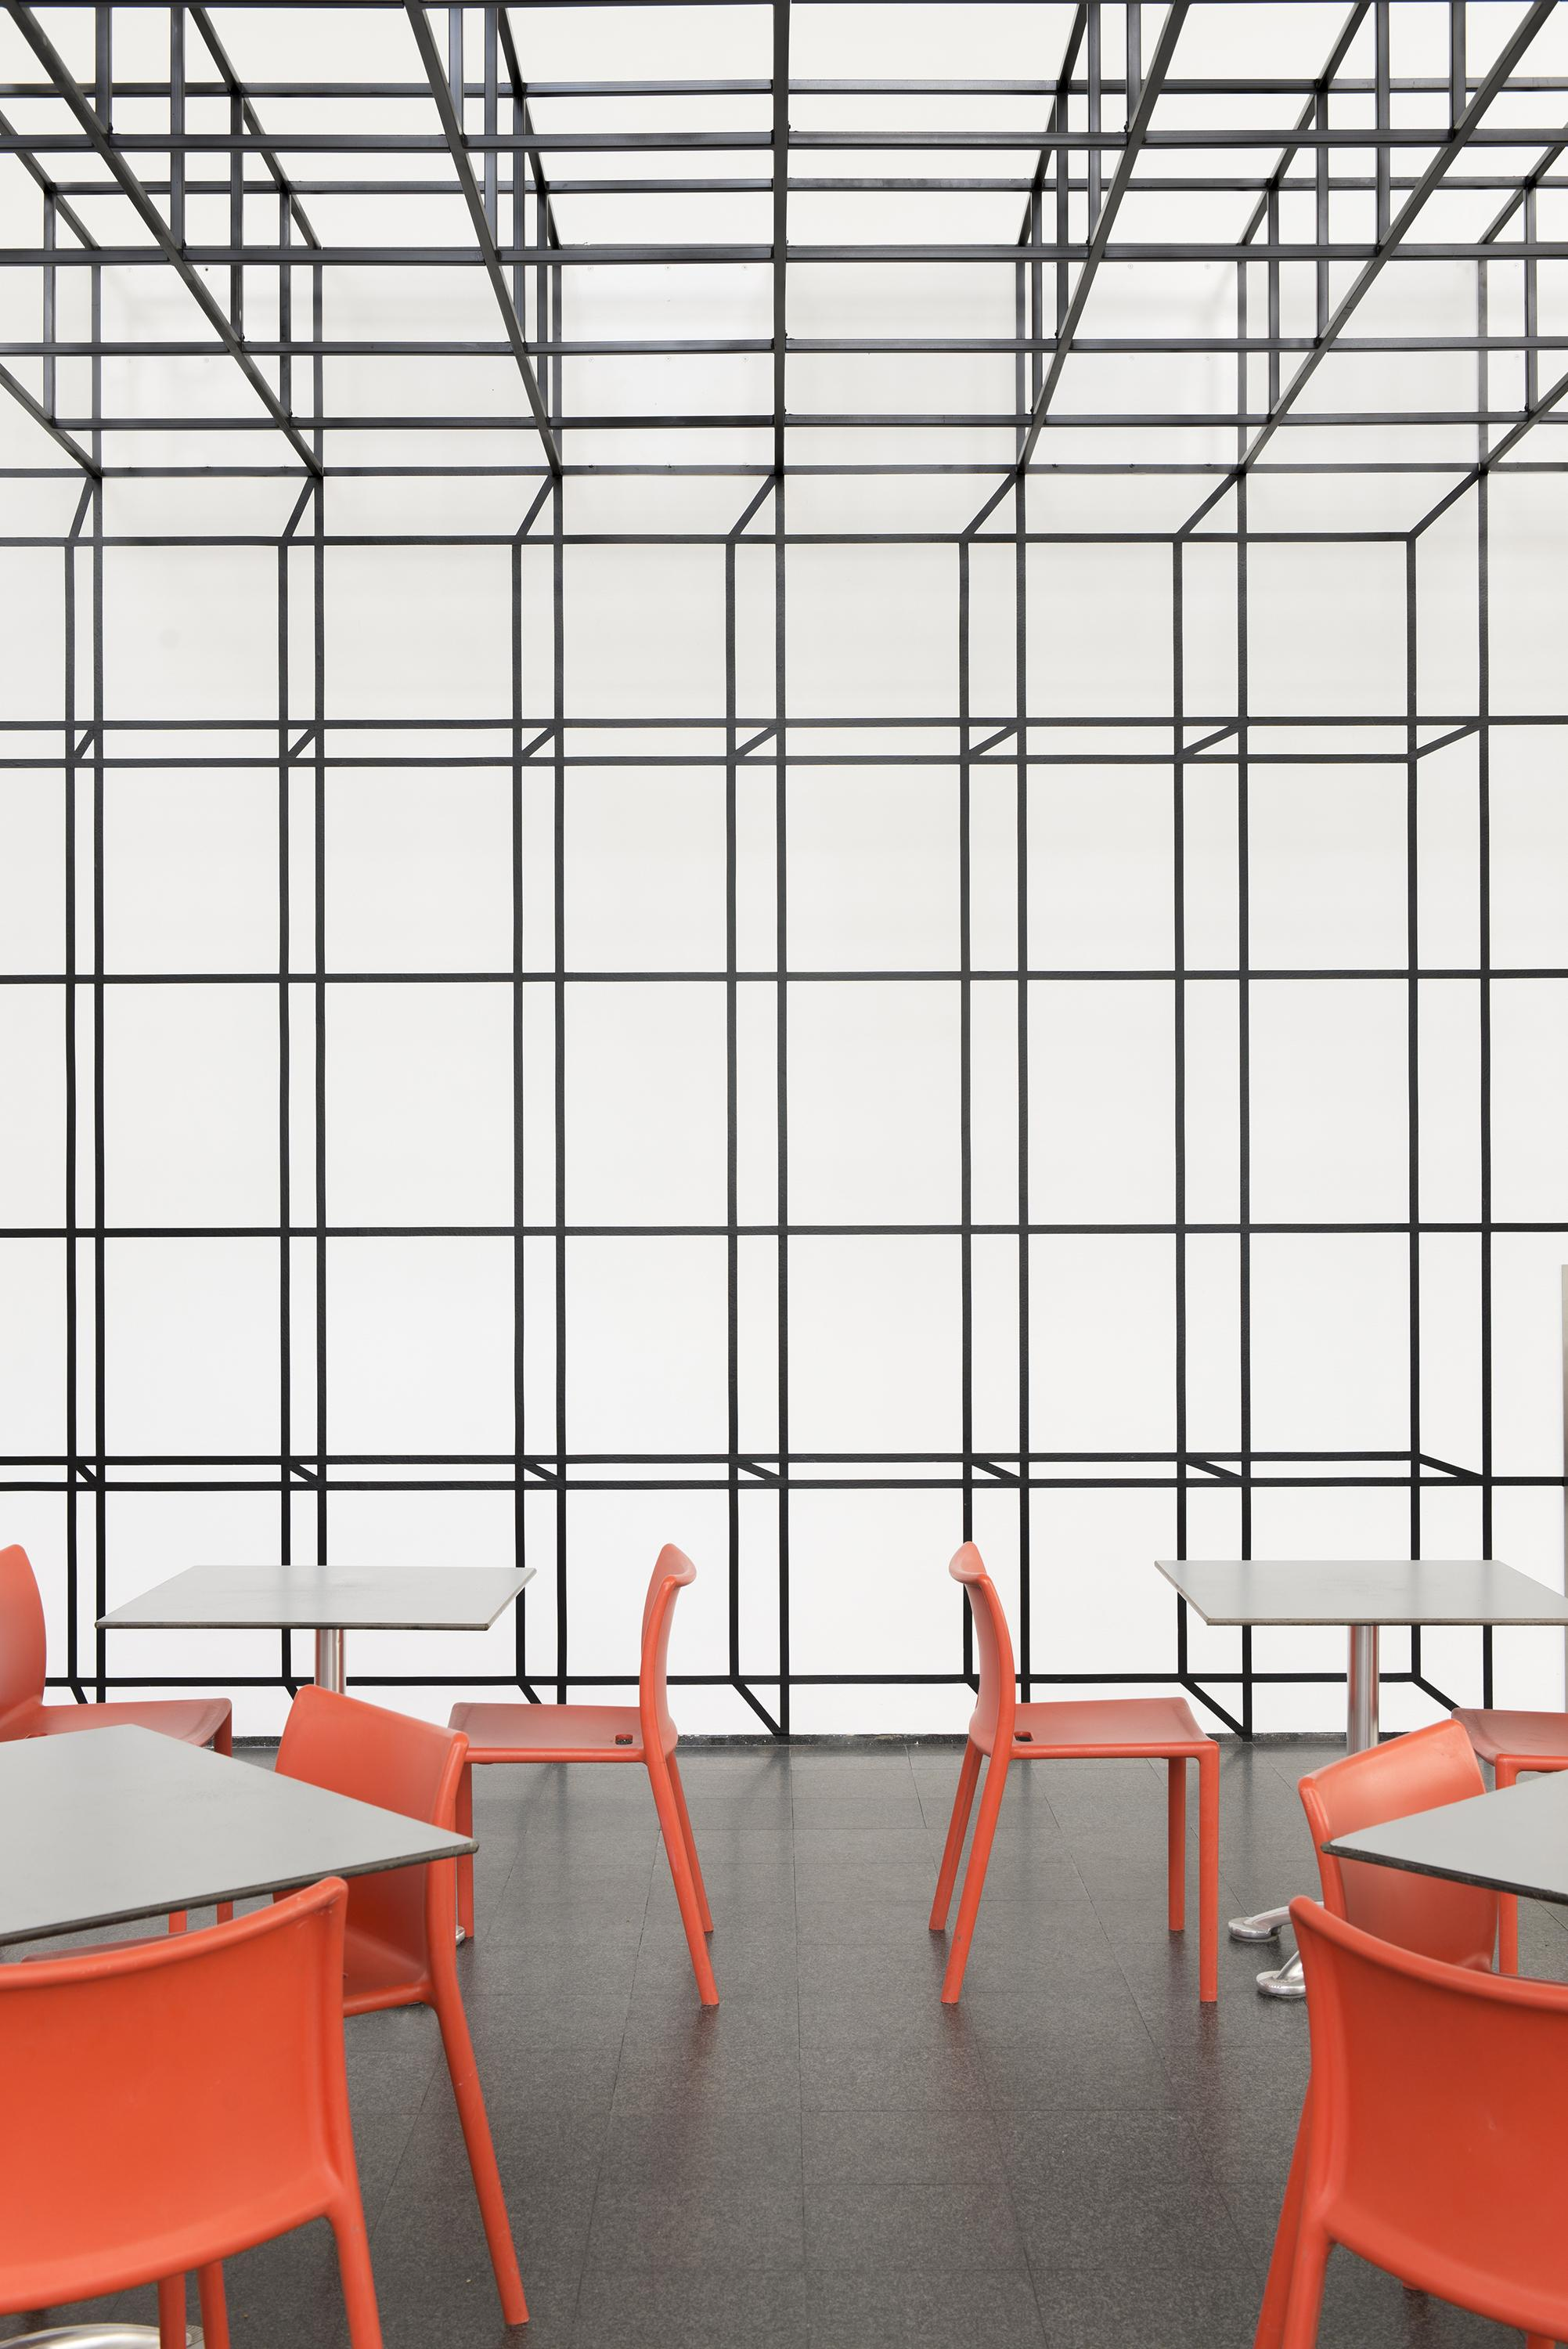 A room with orange chairs and white tables and a ceiling plane made of gray, open-sided cubes that seamlessly transitions into a grid of illusionistic cubes on the wall